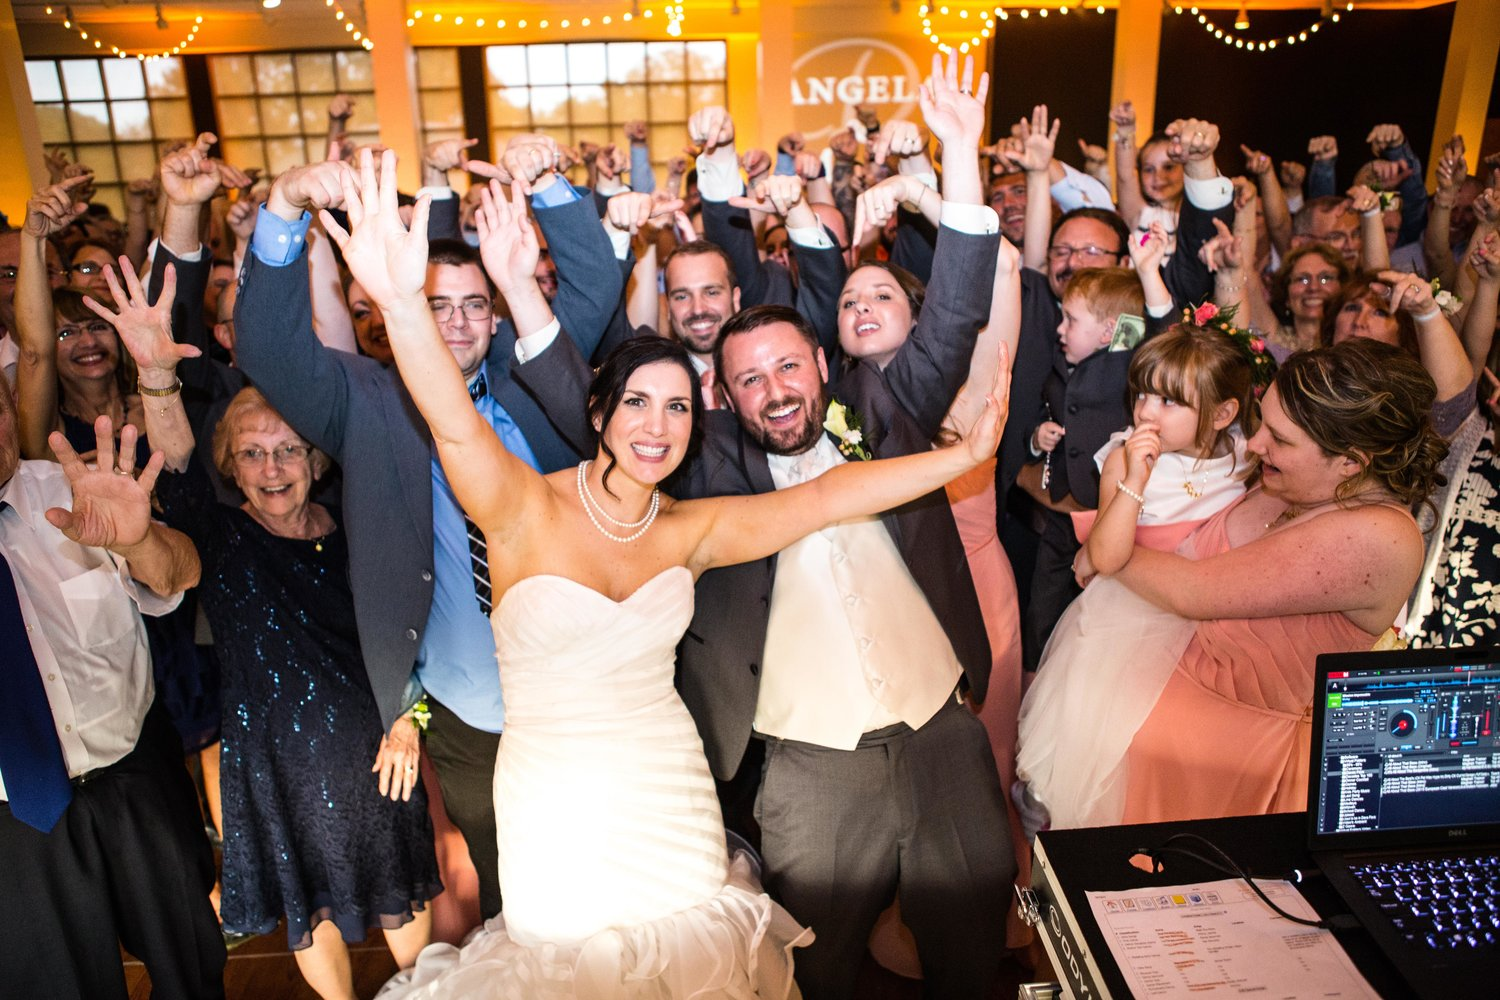 Top 40 Dance Songs That Will Rock The Floor At Your Wedding